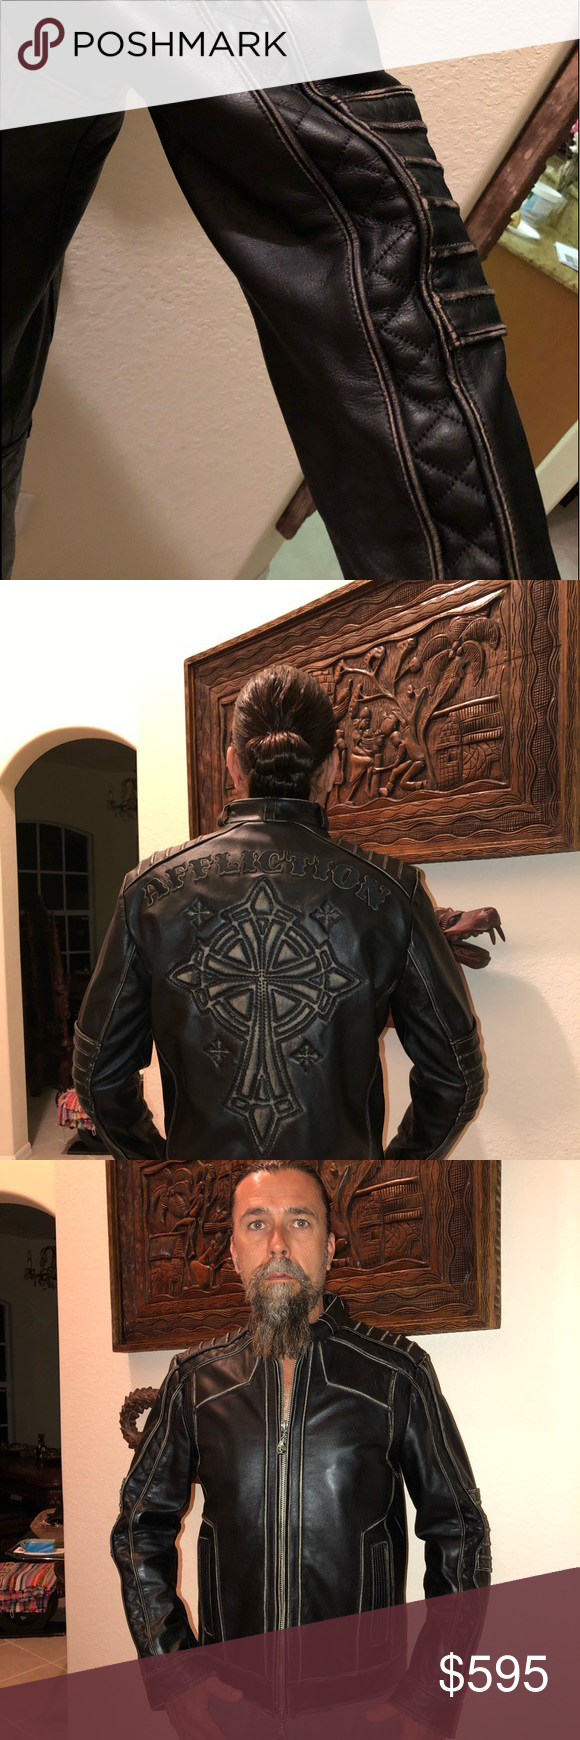 NWT Limited Edition Affliction Leather Jacket NWT